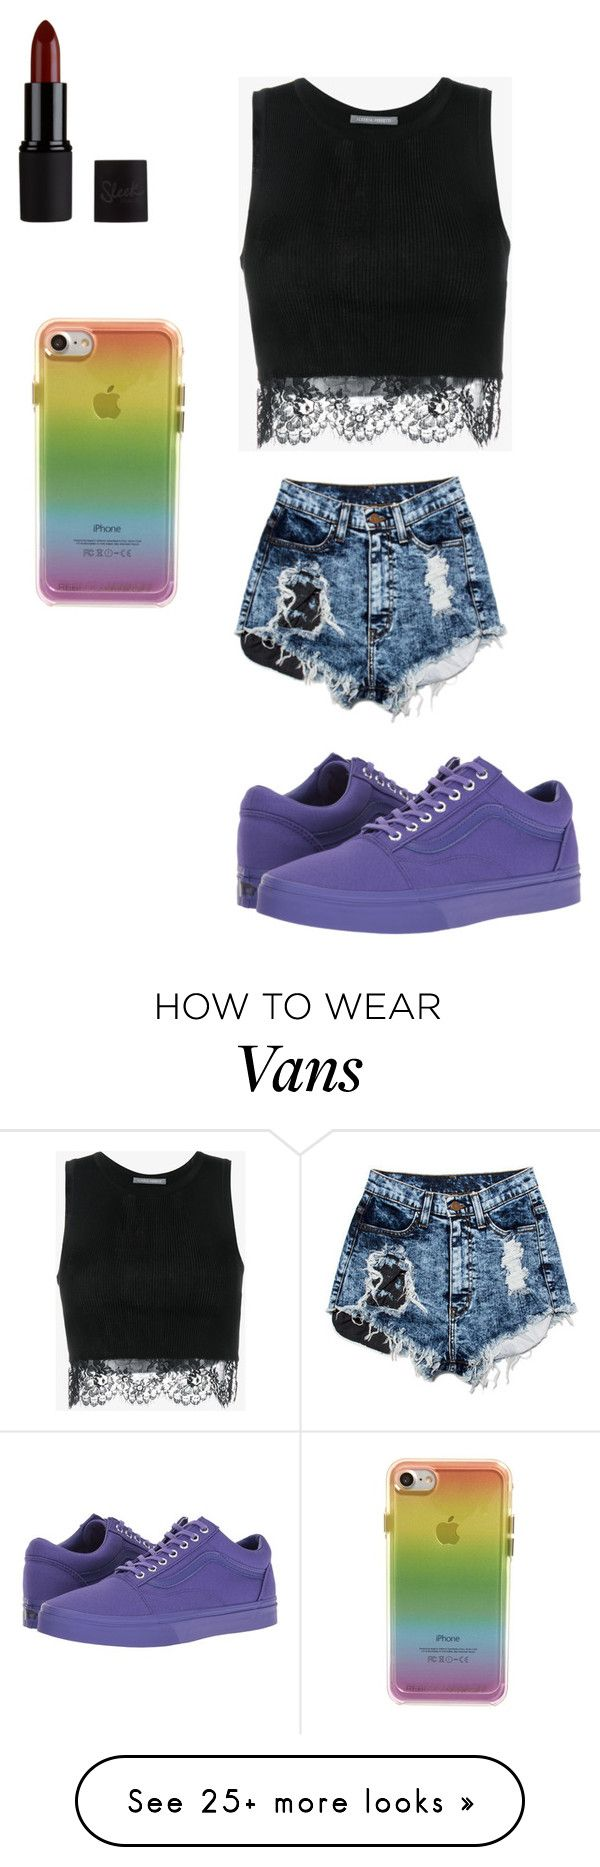 """Im so bored and tired"" by shawnmendeslover-841 on Polyvore featuring Alberta Ferretti, Vans and Rebecca Minkoff"